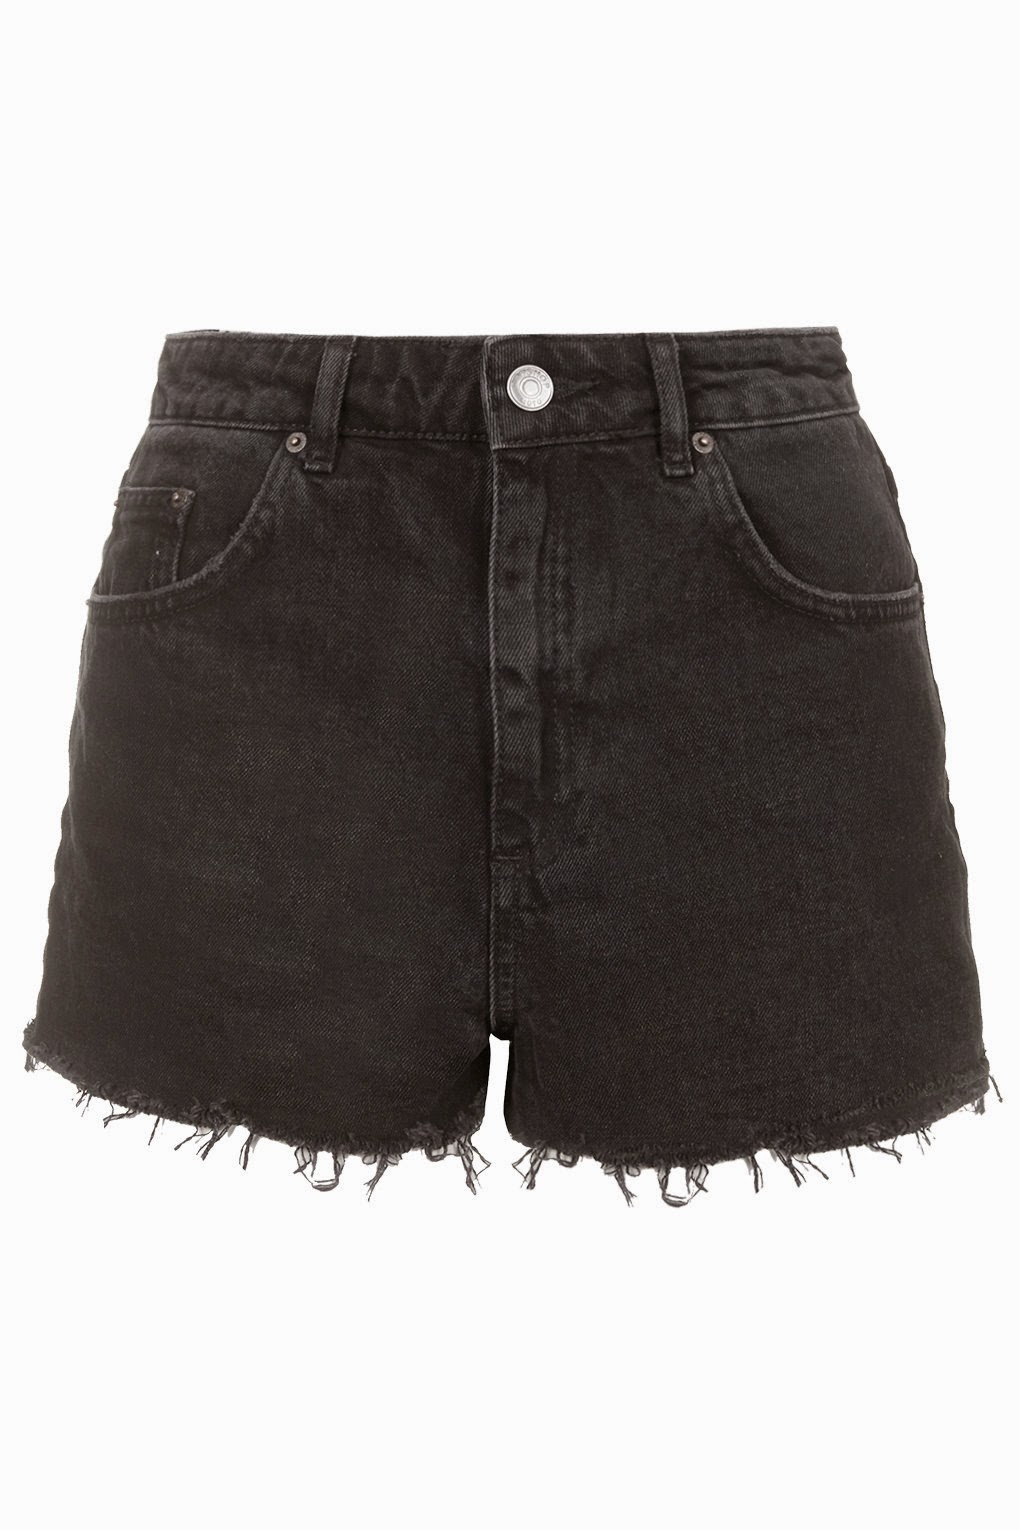 black denim shorts, topshop black shorts, moto black shorts,